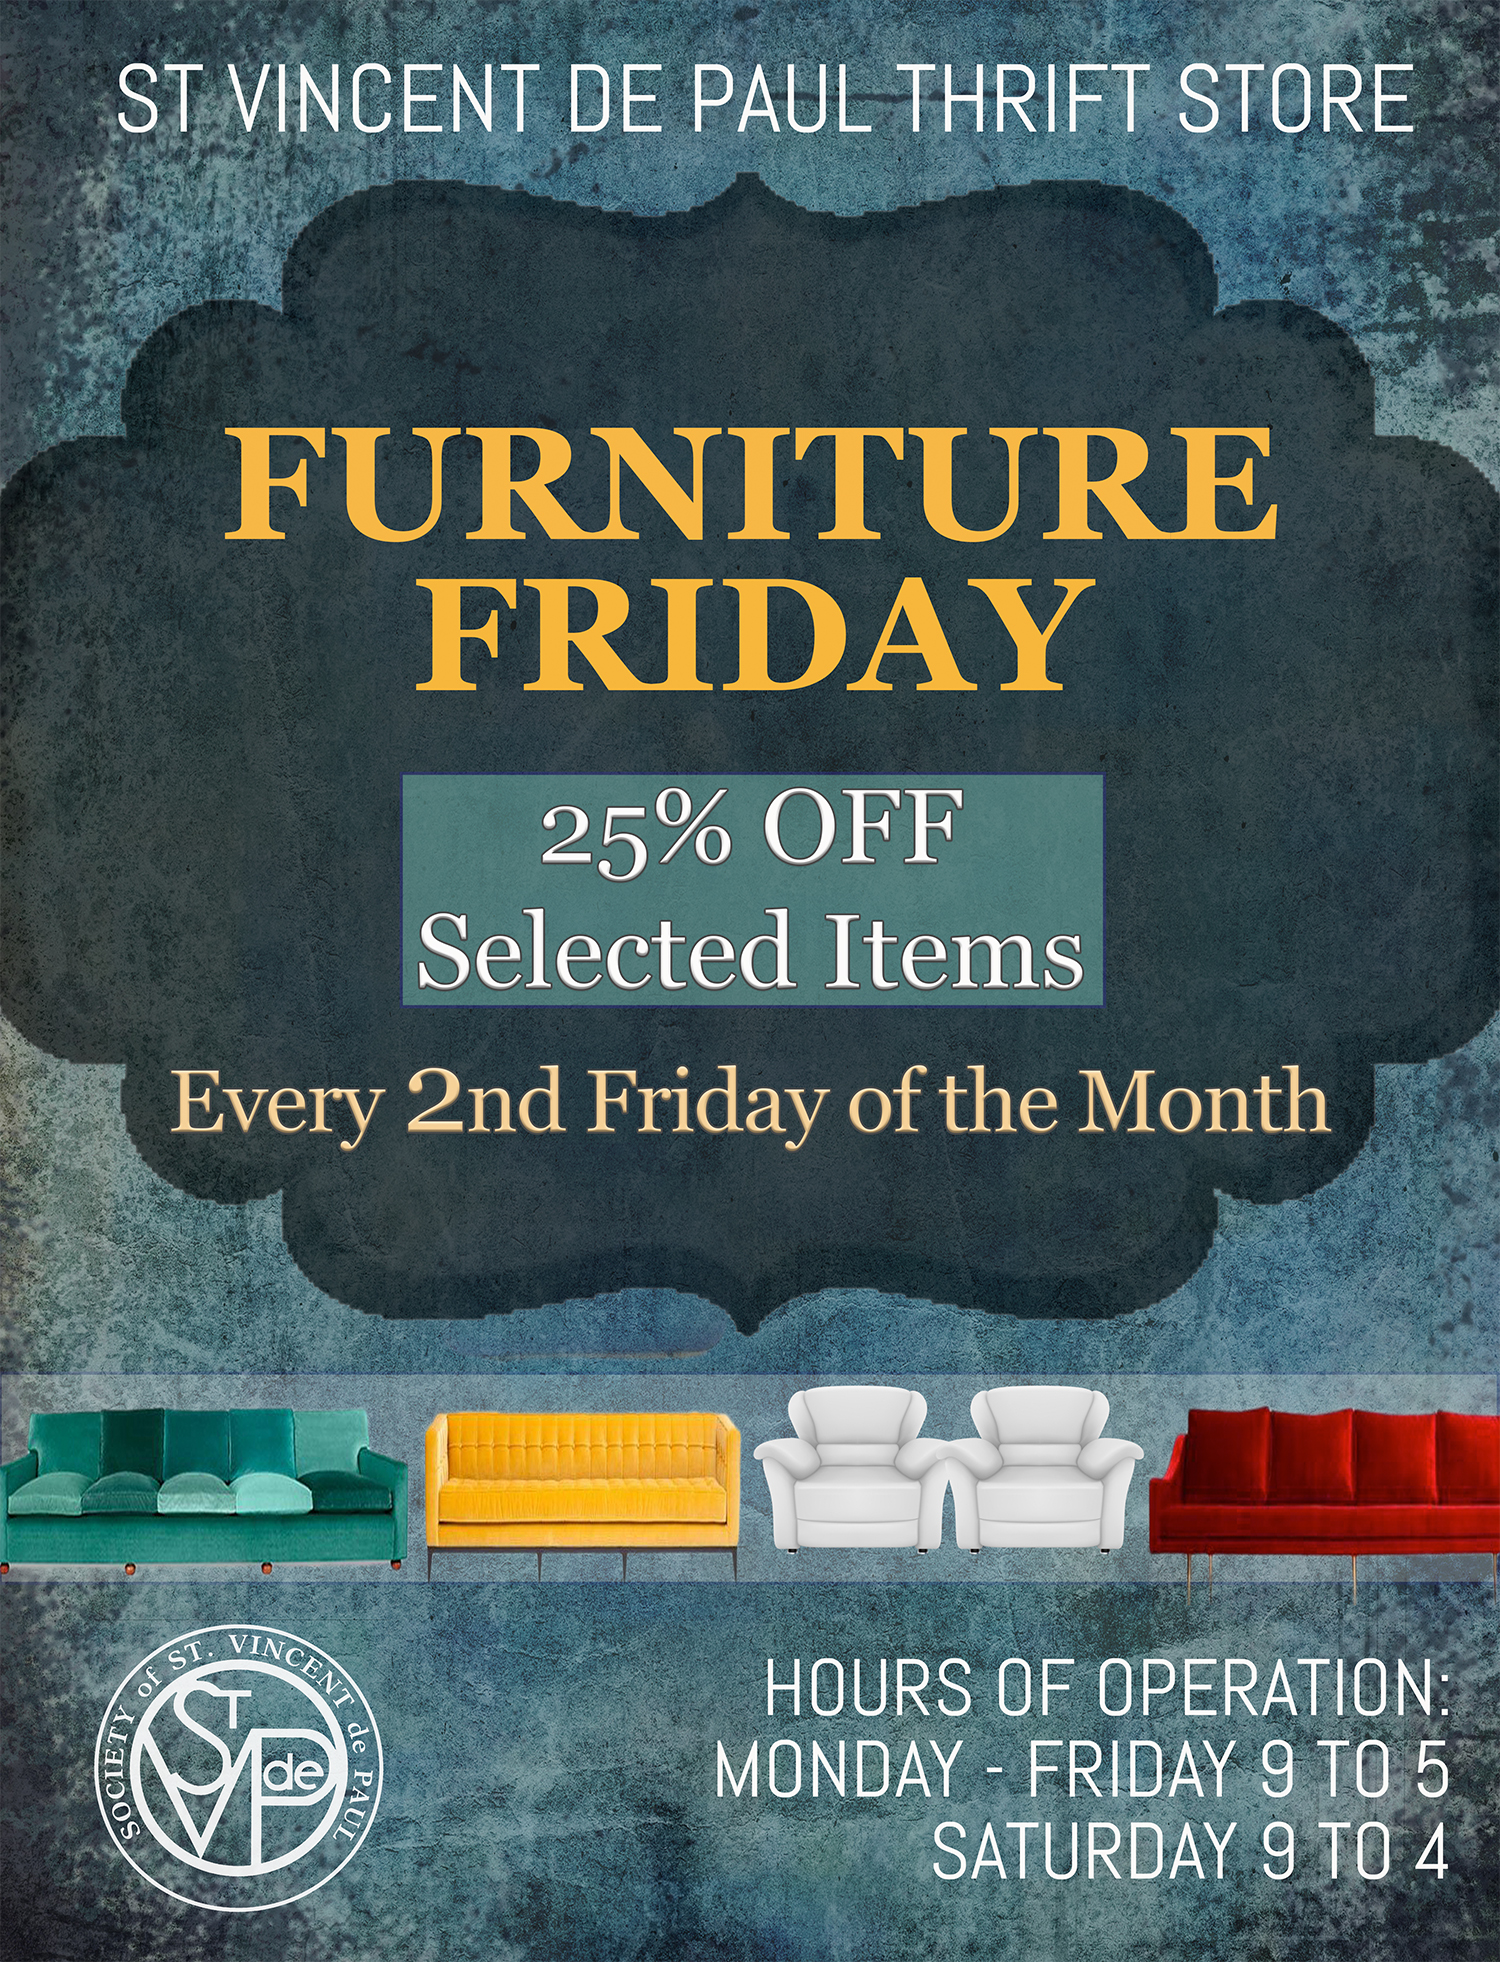 Furniture Friday